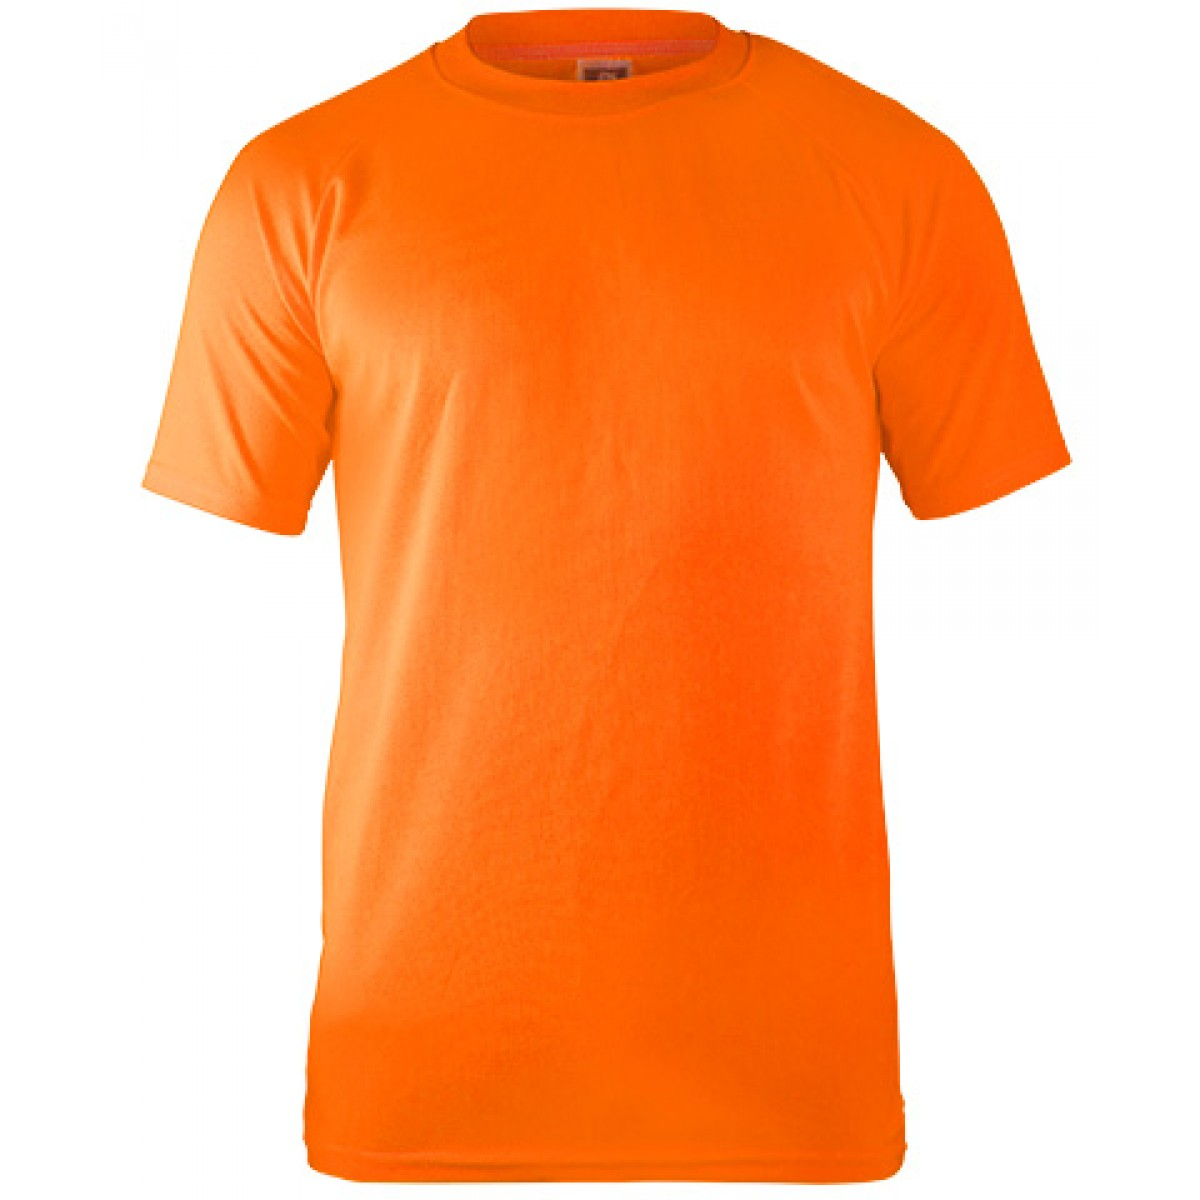 Performance T-shirt-Safety Orange-YM